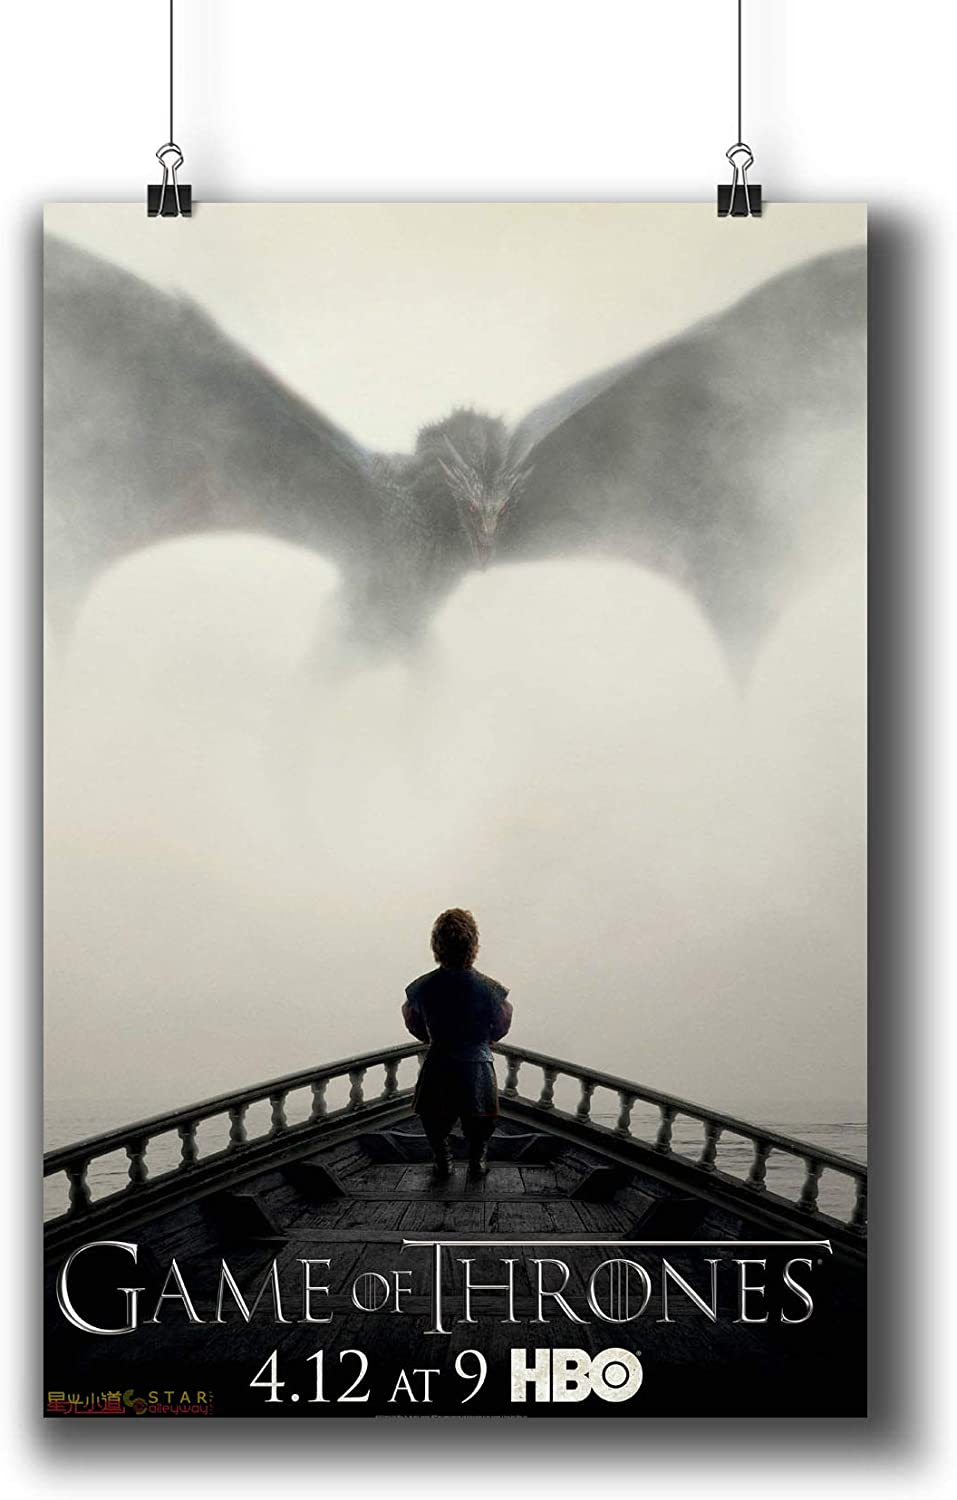 Game of Thrones TV Series Poster Small Prints 694-501 Popular TV Show,Wall Art Decor for Dorm Bedroom Living Room (A4 8x12inch 21x29cm)